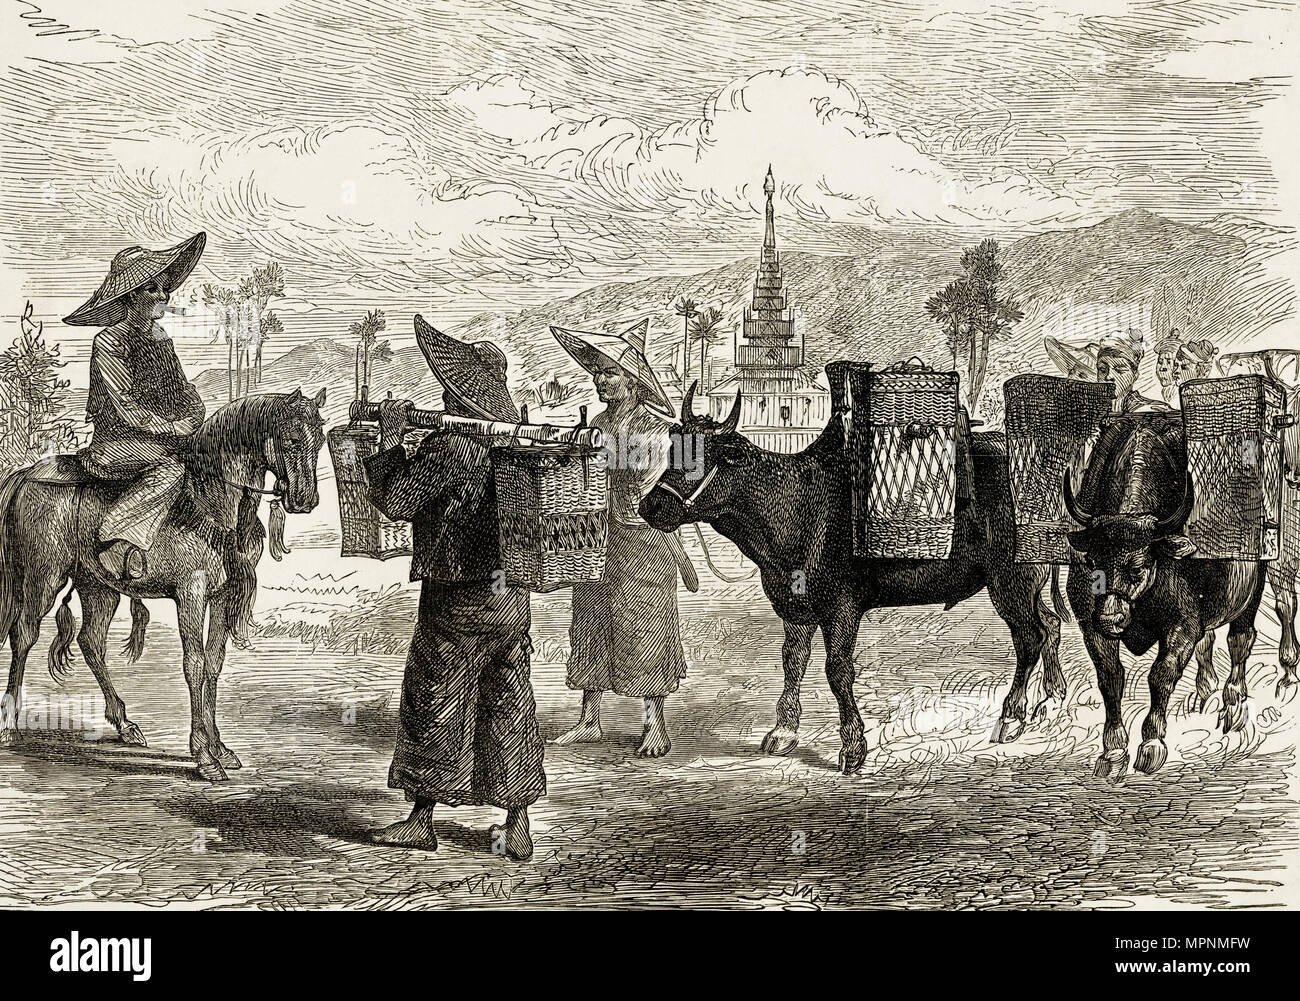 Native Shans pictured in Burma. 19th century Victorian engraving circa 1887 - Stock Image